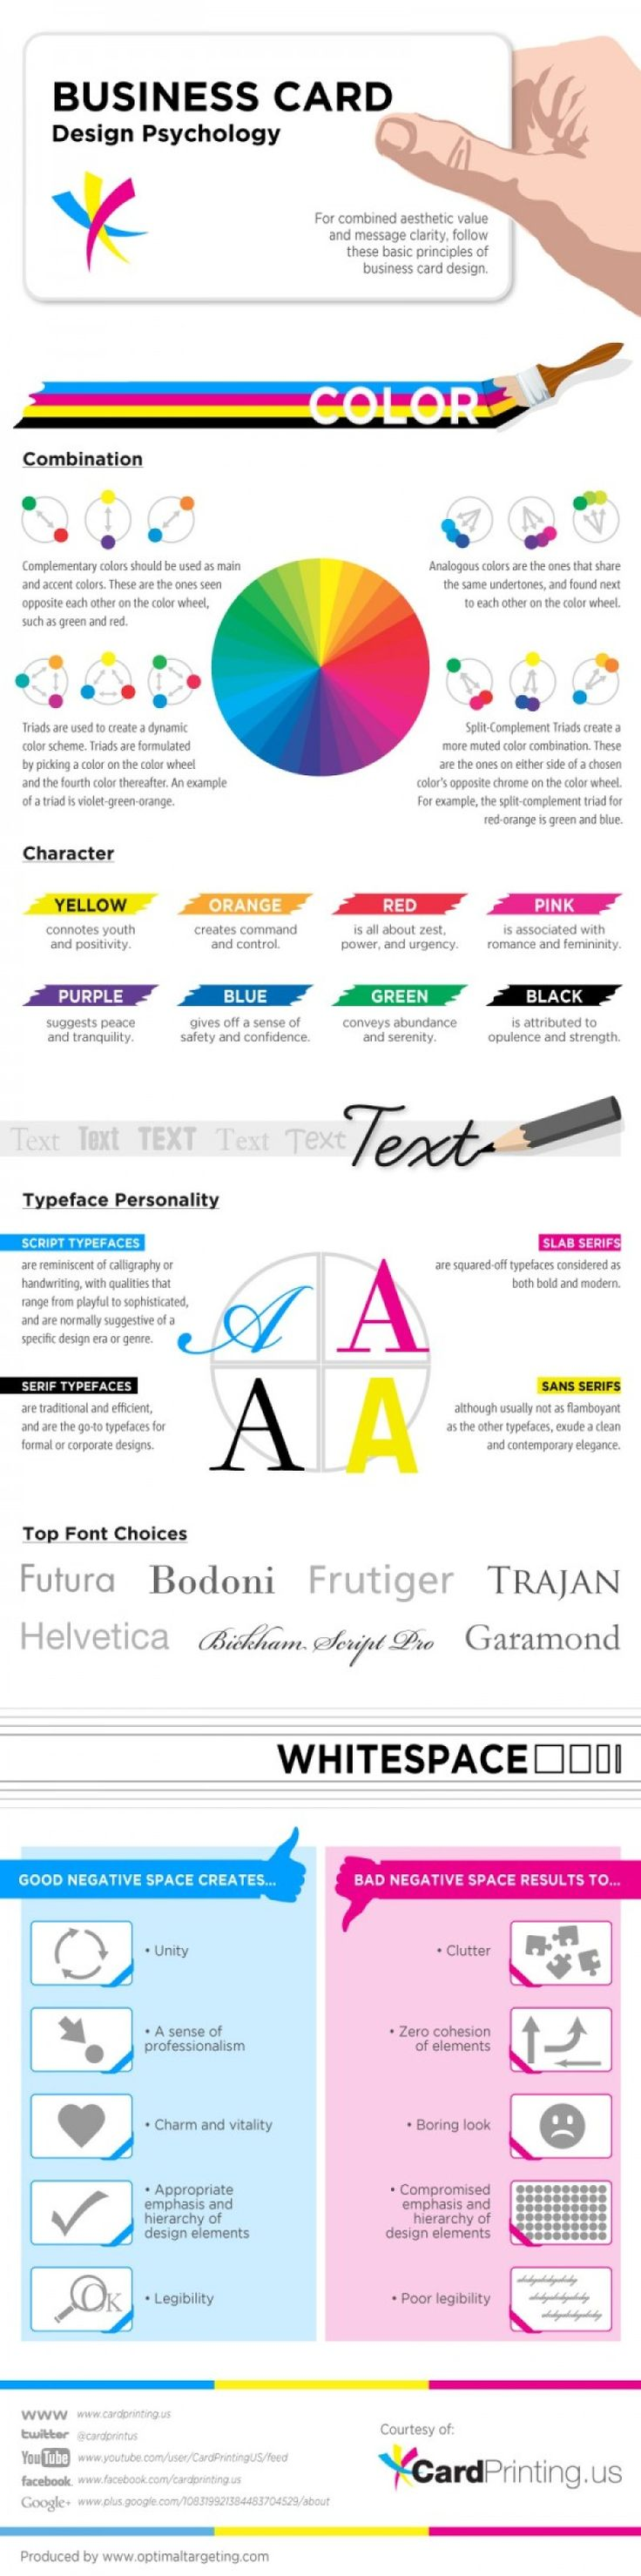 Some useful tips on colour, font and layout. I will refer back to this when I have decided on fashion label and audience.